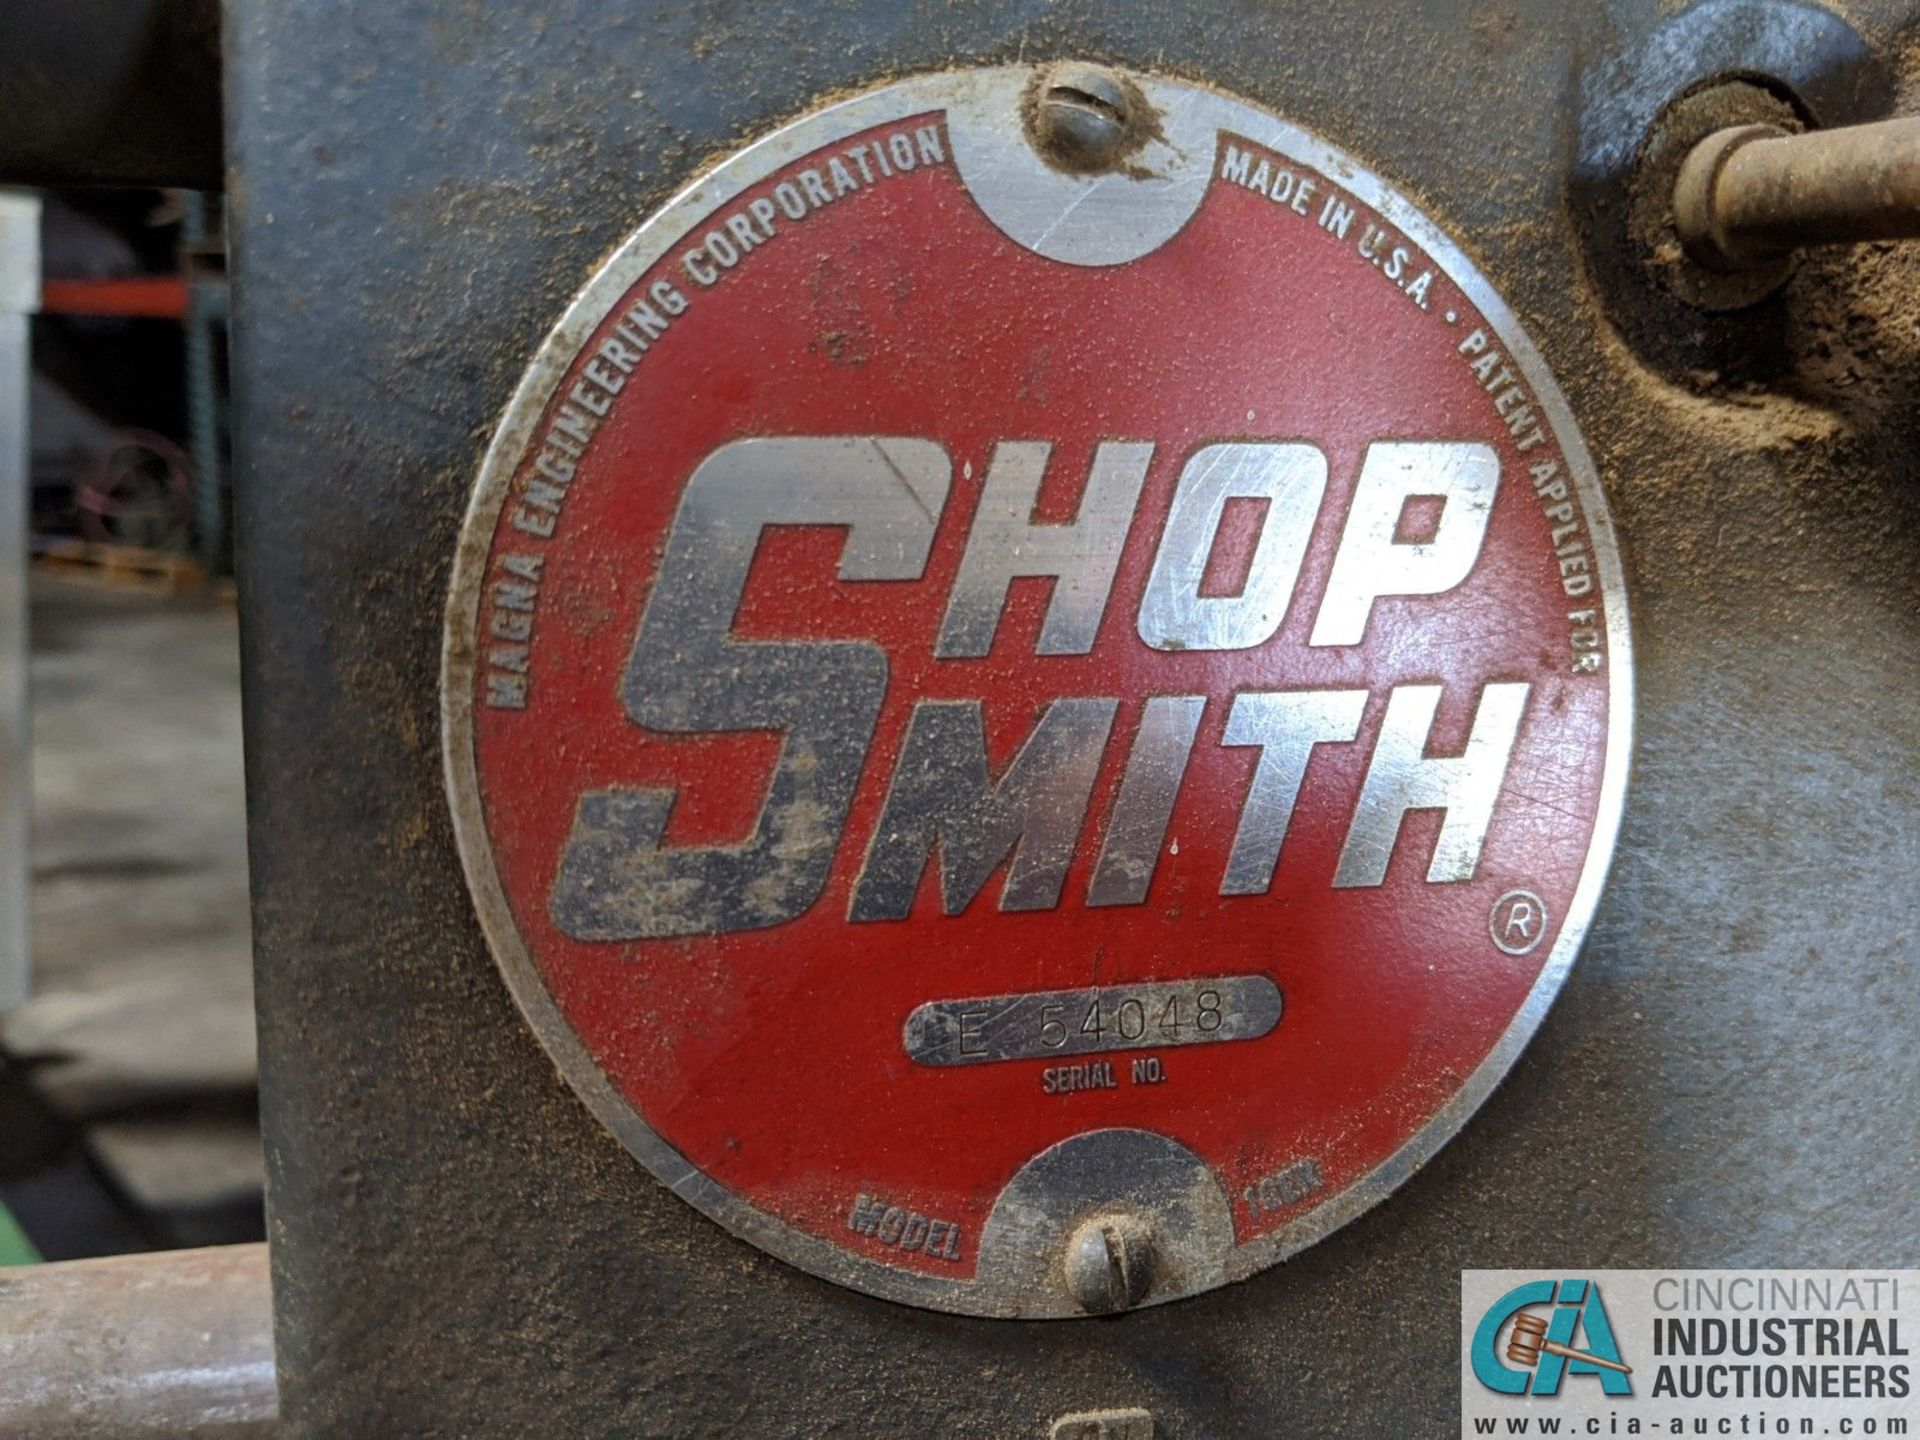 """15"""" SHOP SMITH BELT TYPE WOODWORKING LATHE; S/N E546548, MOUNTED ON PORTABLE BASE (8635 East Ave., - Image 3 of 5"""